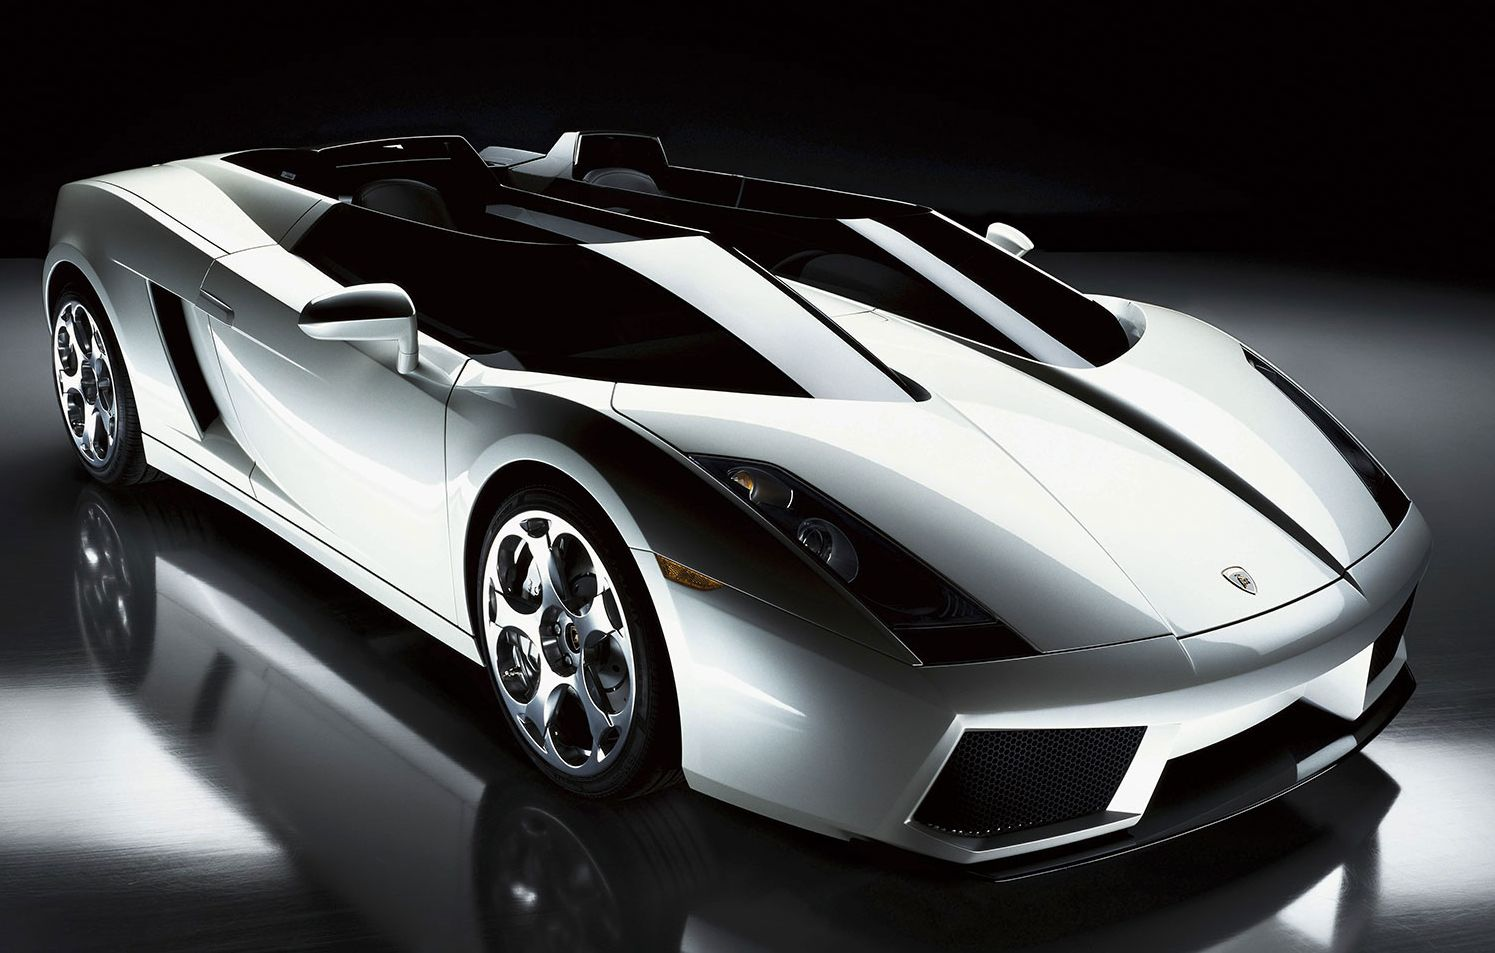 Lamborghini Cars Hd Wallpaper Super Fancy Cars